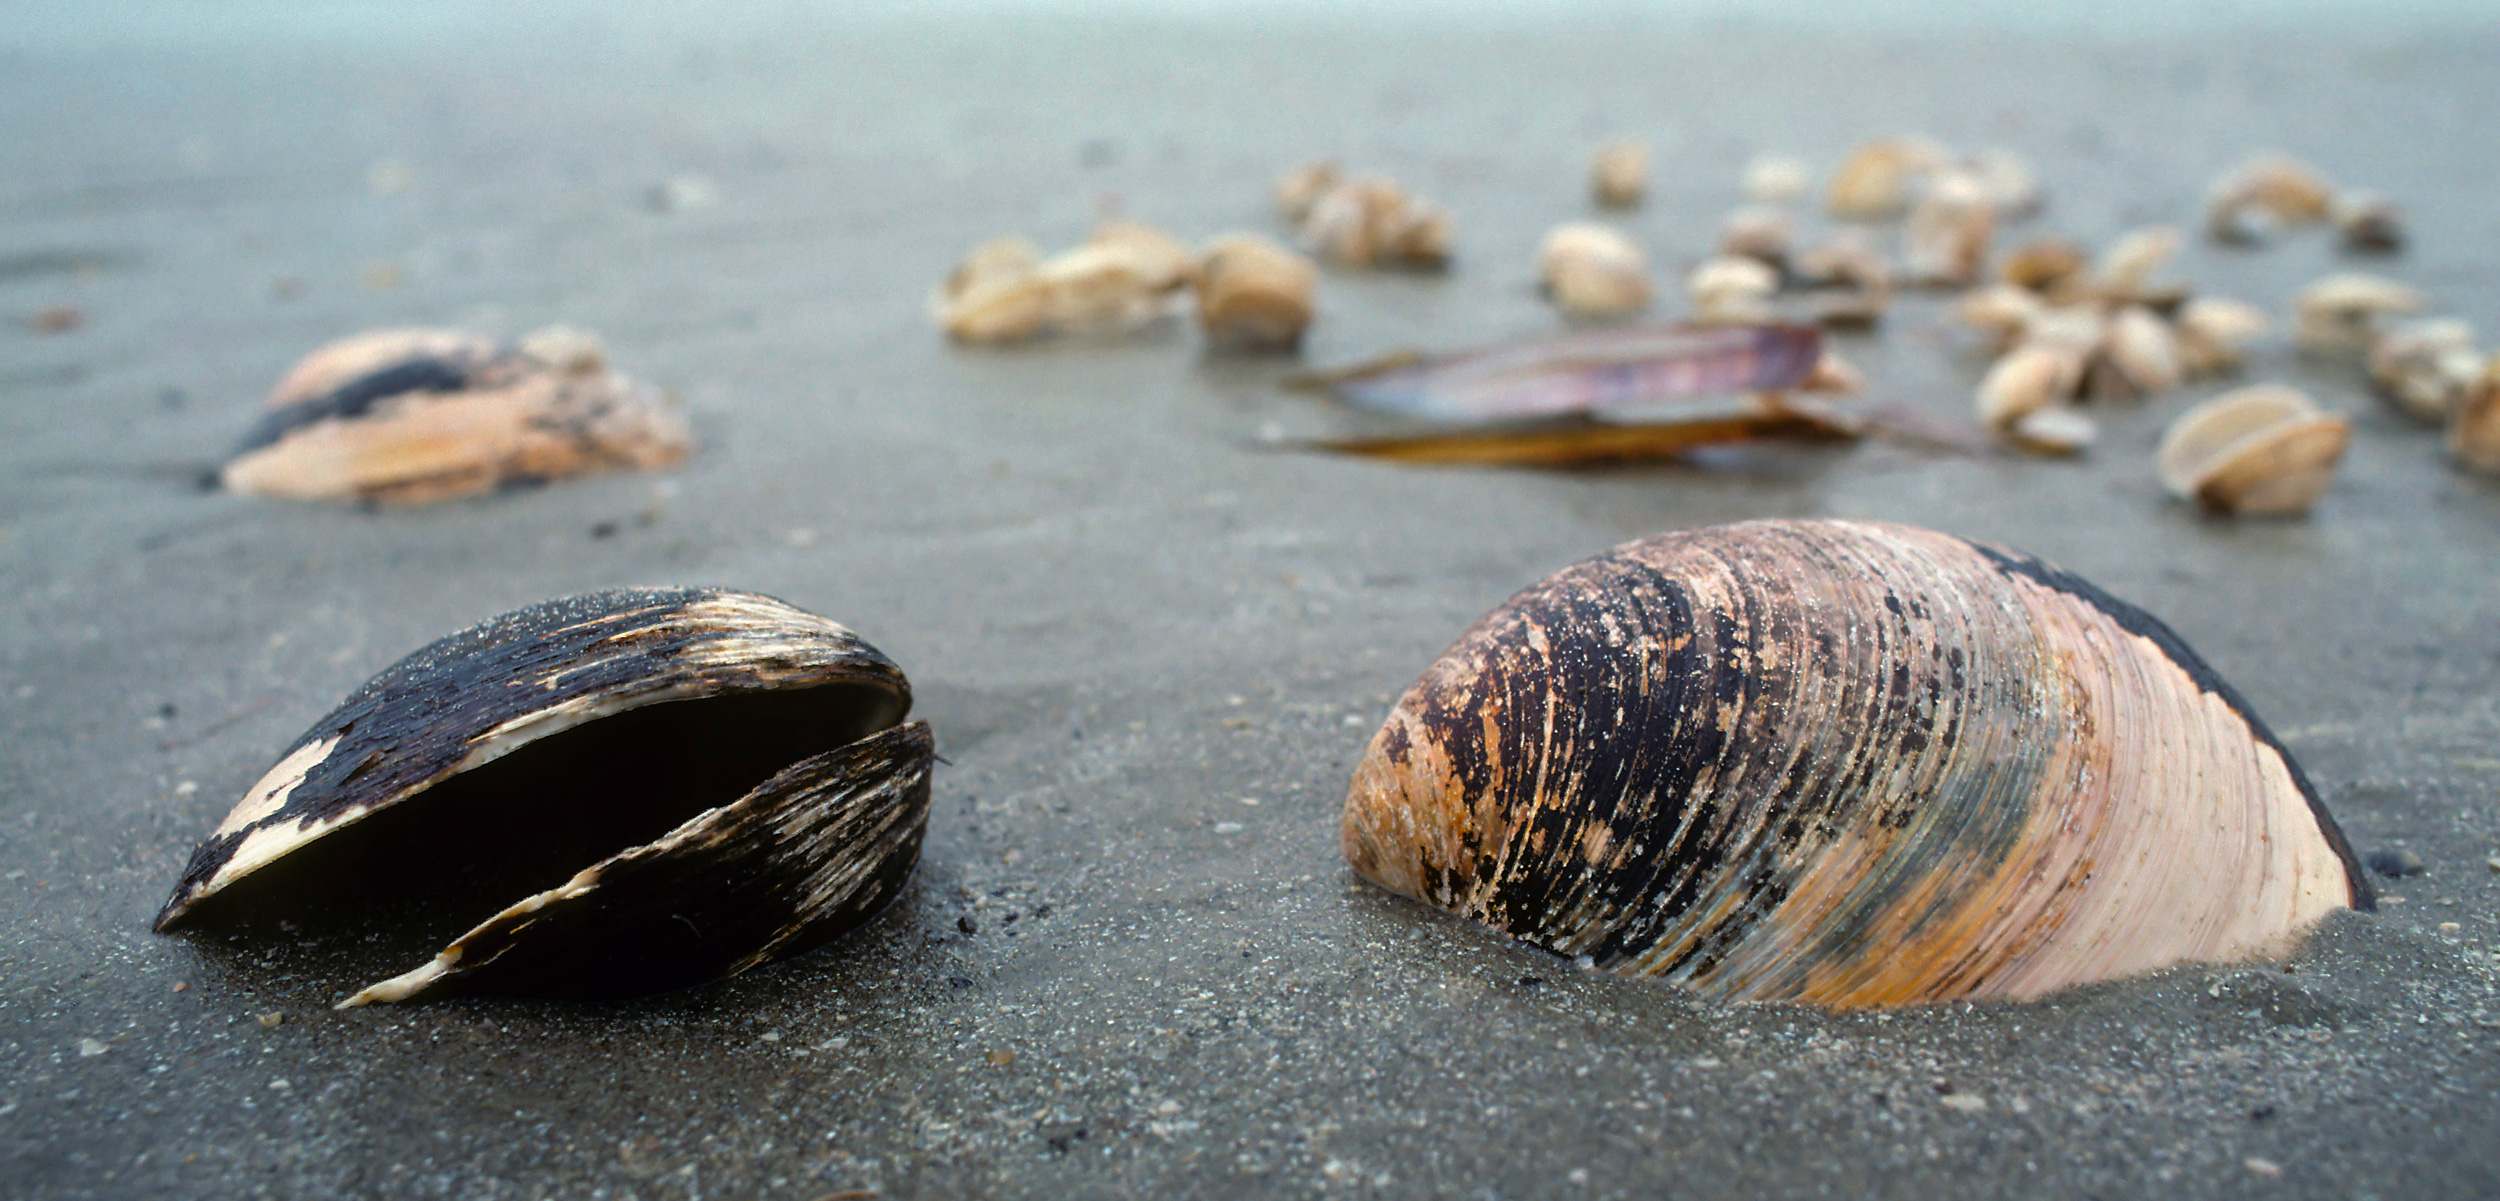 ocean quahog shells on the beach